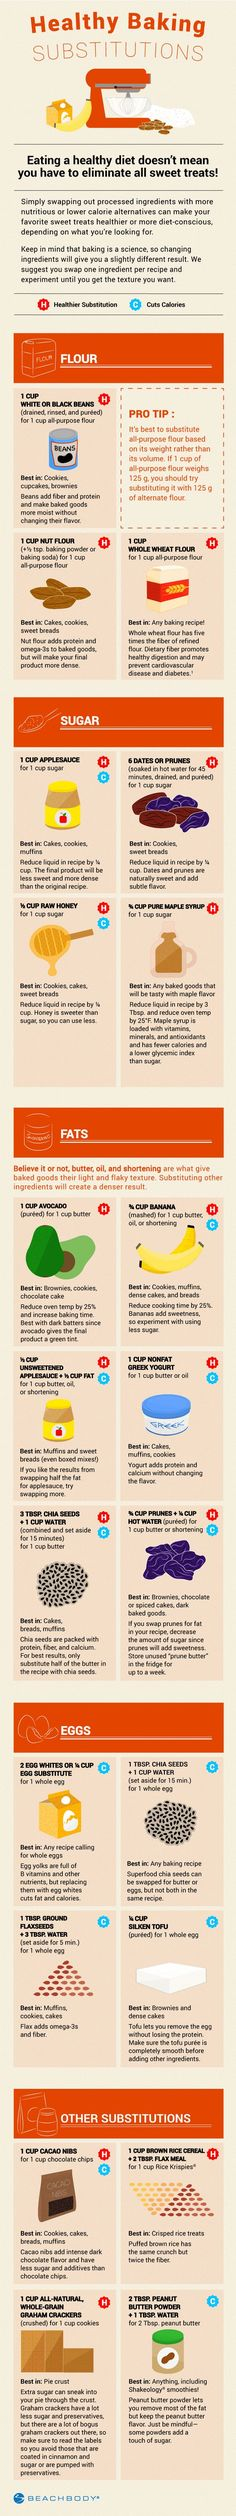 Healthy Baking Substitutes ~ Interested in a personal coach? Let's connect! Send an email to ginny.toll@gmail.com and let me know a little about your goals and lifestyle! We'll work together to pick the right program for you! #GetFit2StayHealthy #Motivation #HealthTips #NutritionTips #Infographic